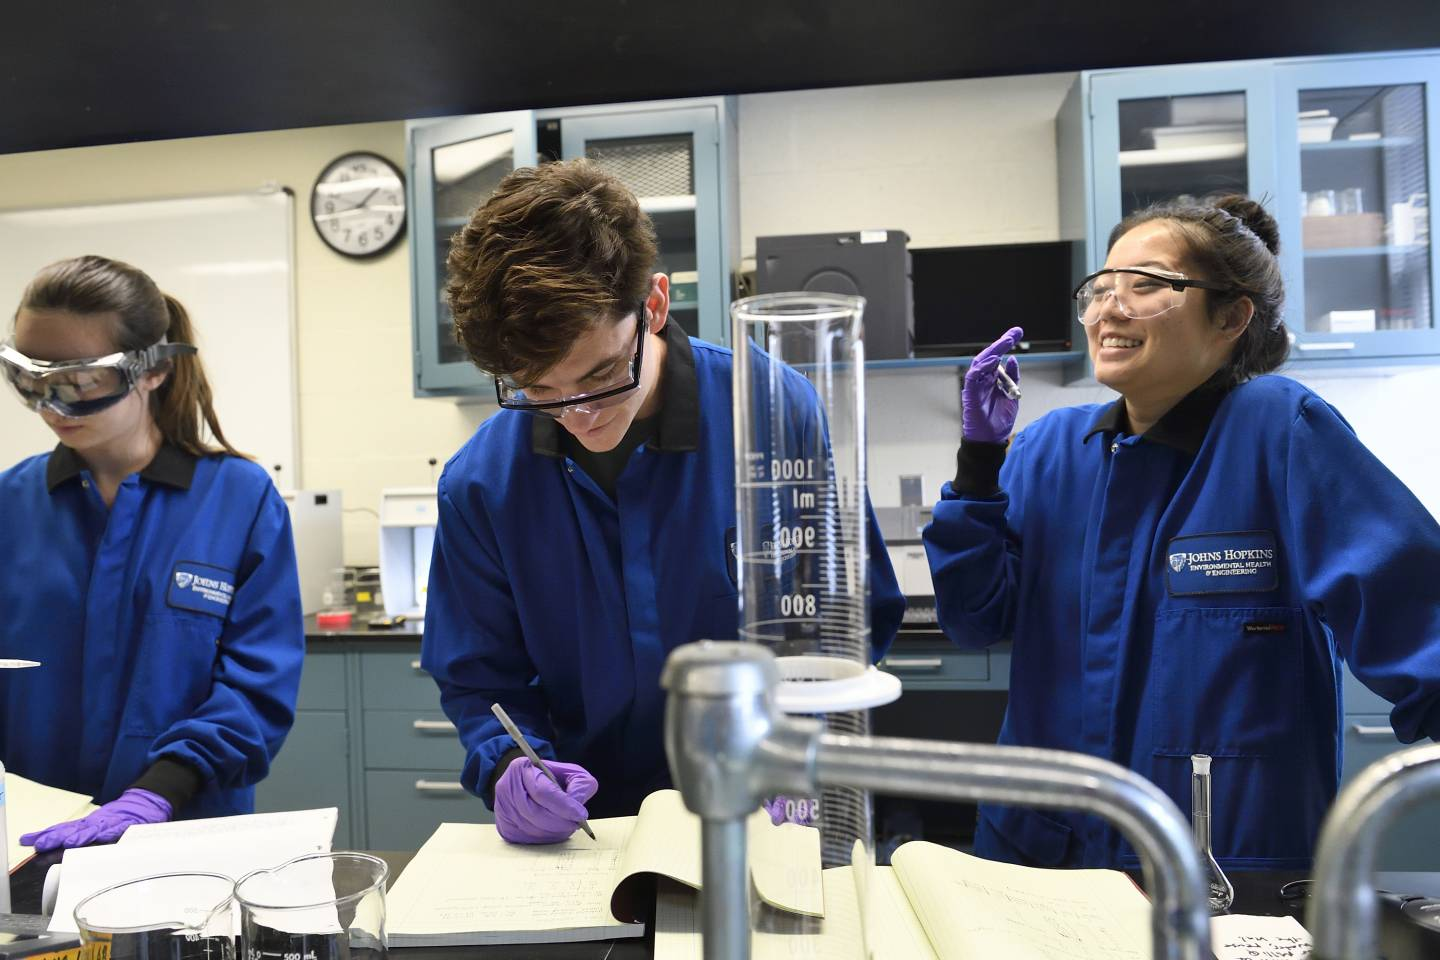 Students work in a laboratory